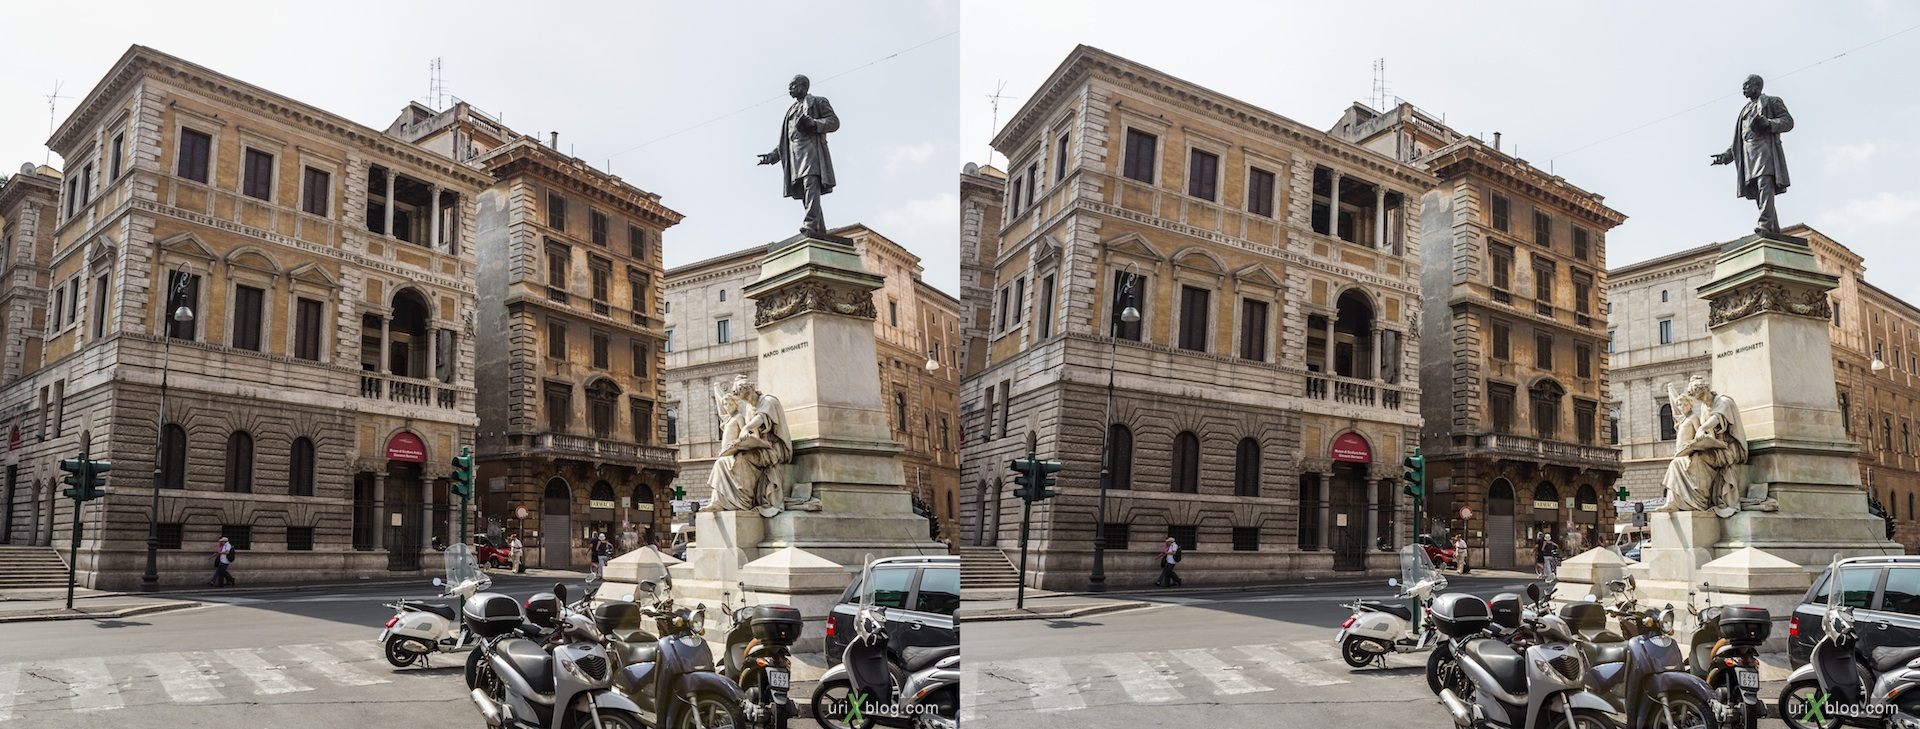 2012, piazza di San Pantaleo square, monument of Marco Minghetti, Farnesina dei Baullari palace, 3D, stereo pair, cross-eyed, crossview, cross view stereo pair